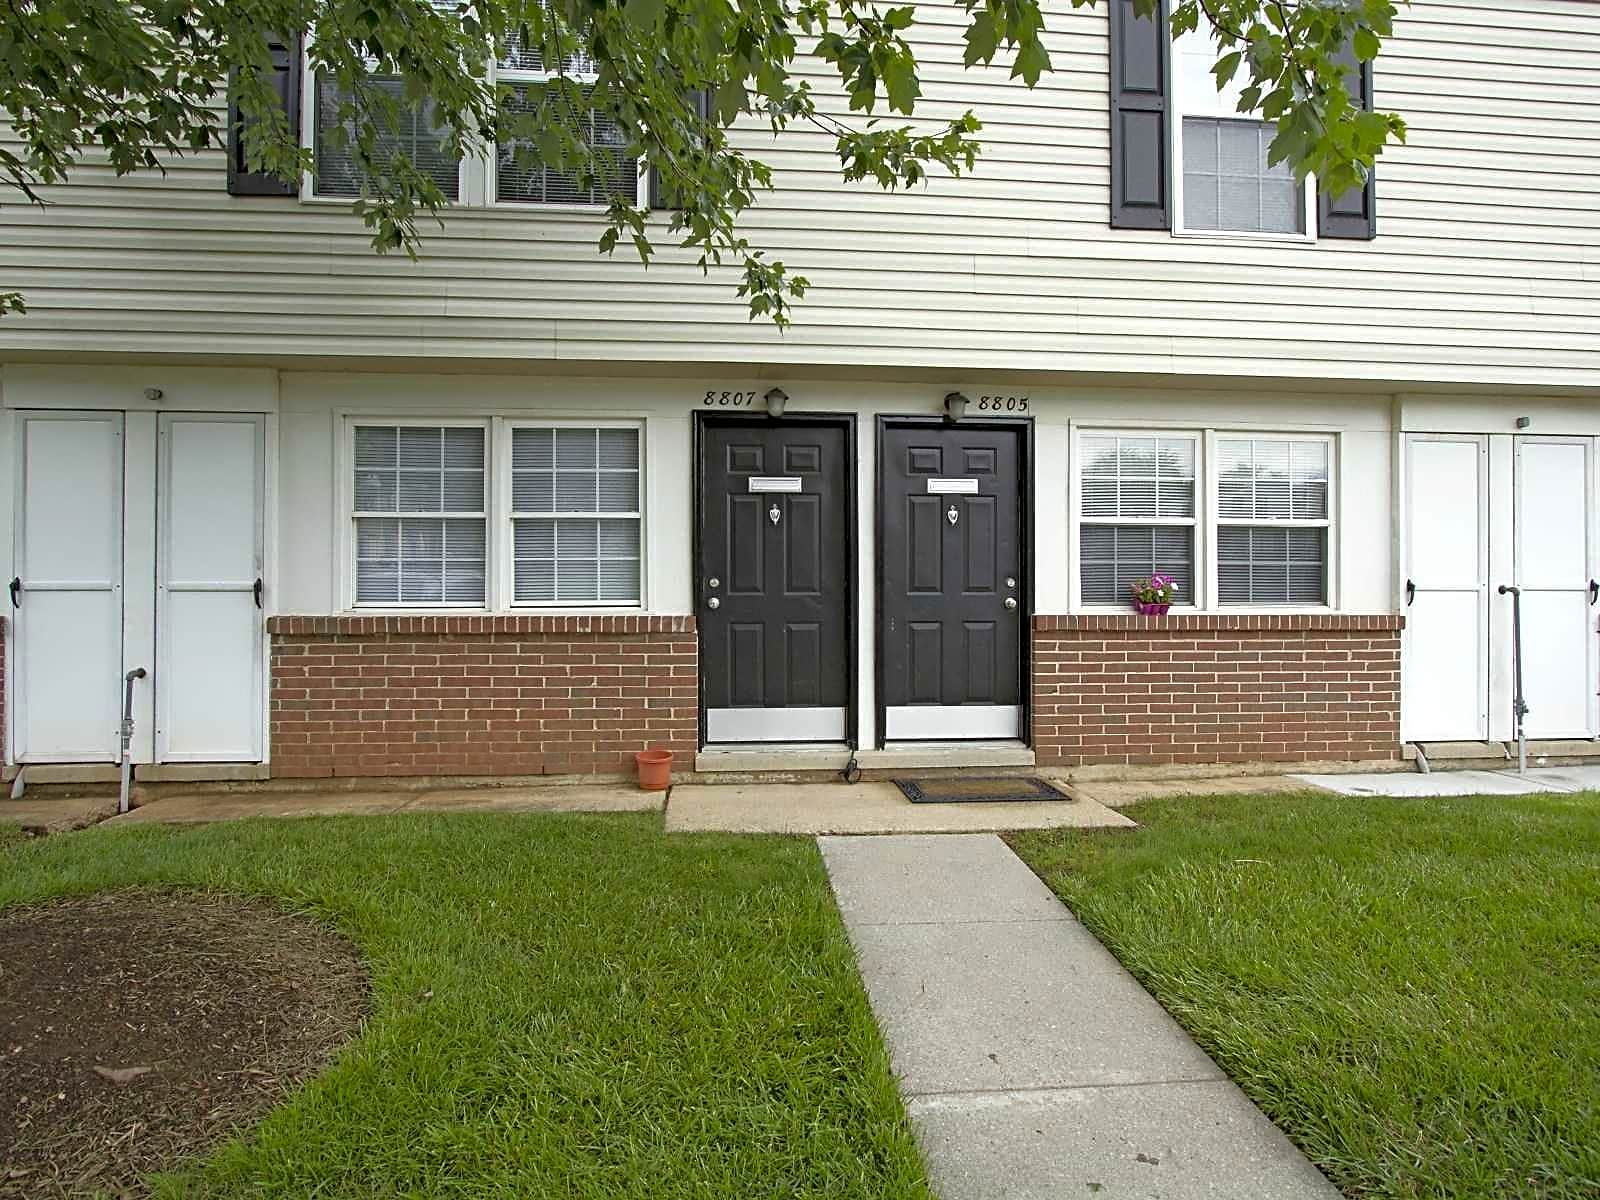 Photo: Baltimore Apartment for Rent - $685.00 / month; 1 Bd & 1 Ba